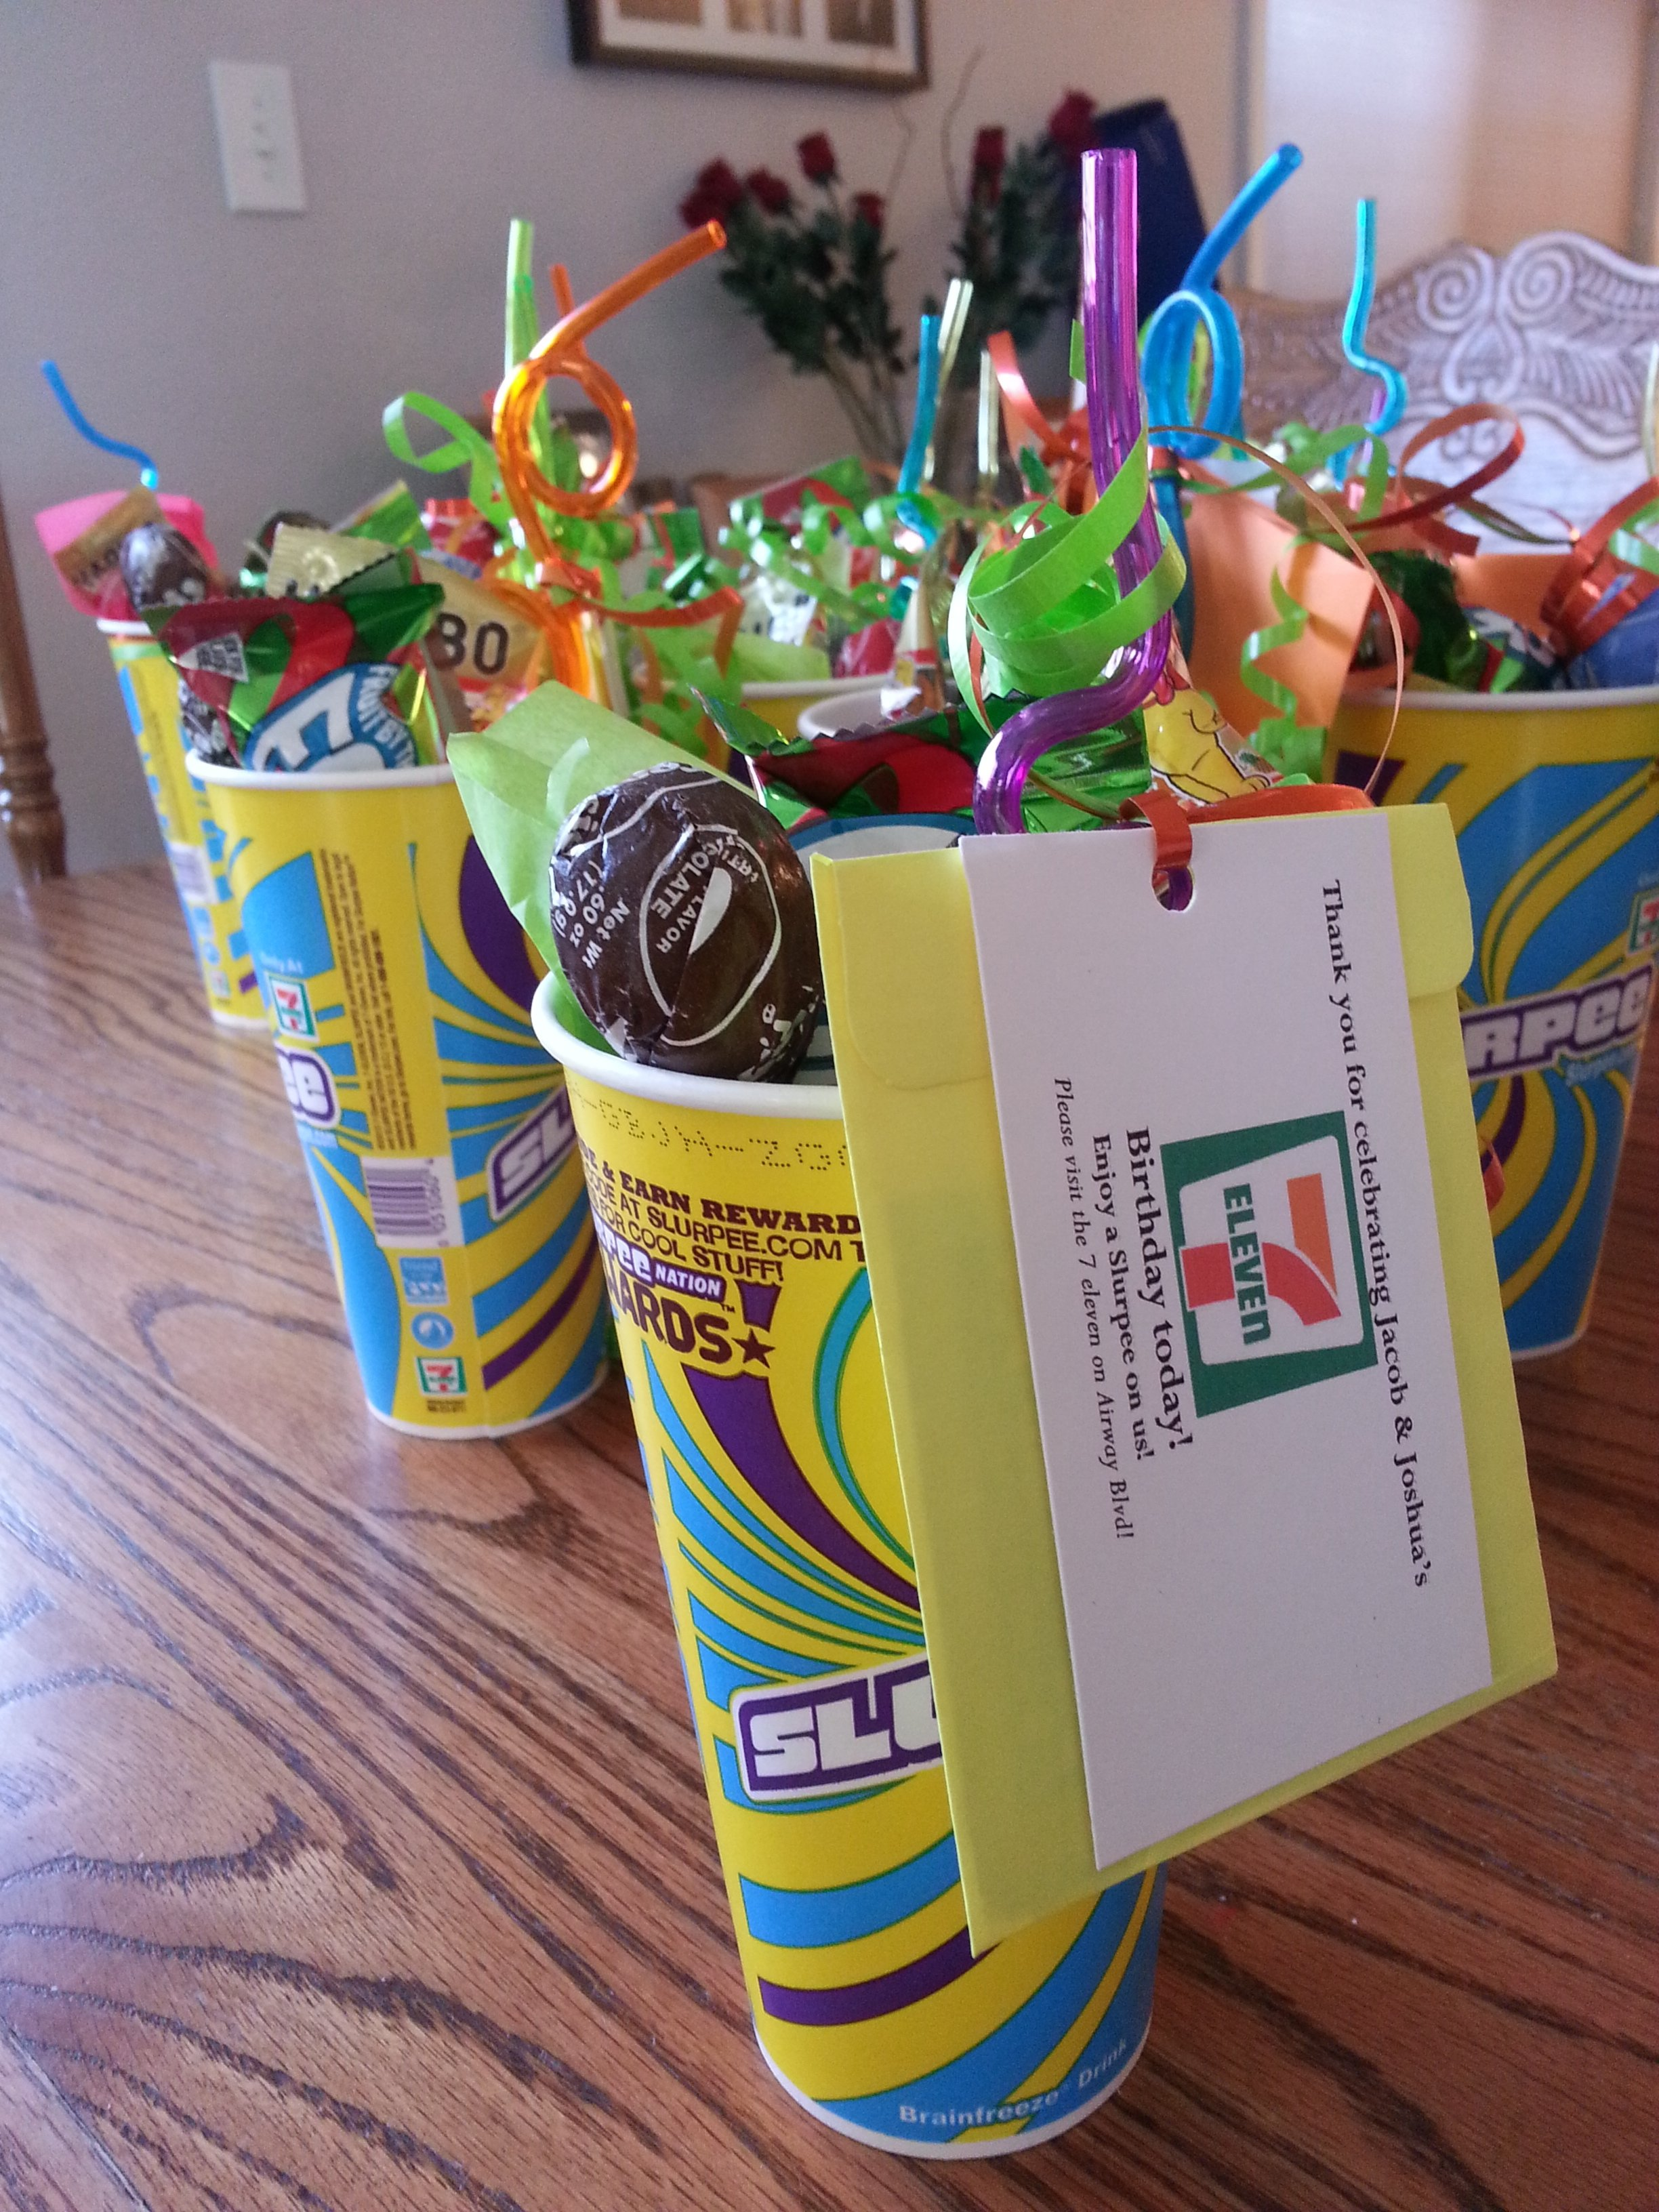 10 Lovable Party Ideas For 14 Year Olds My Boys Turned 7 And 11 Years Old